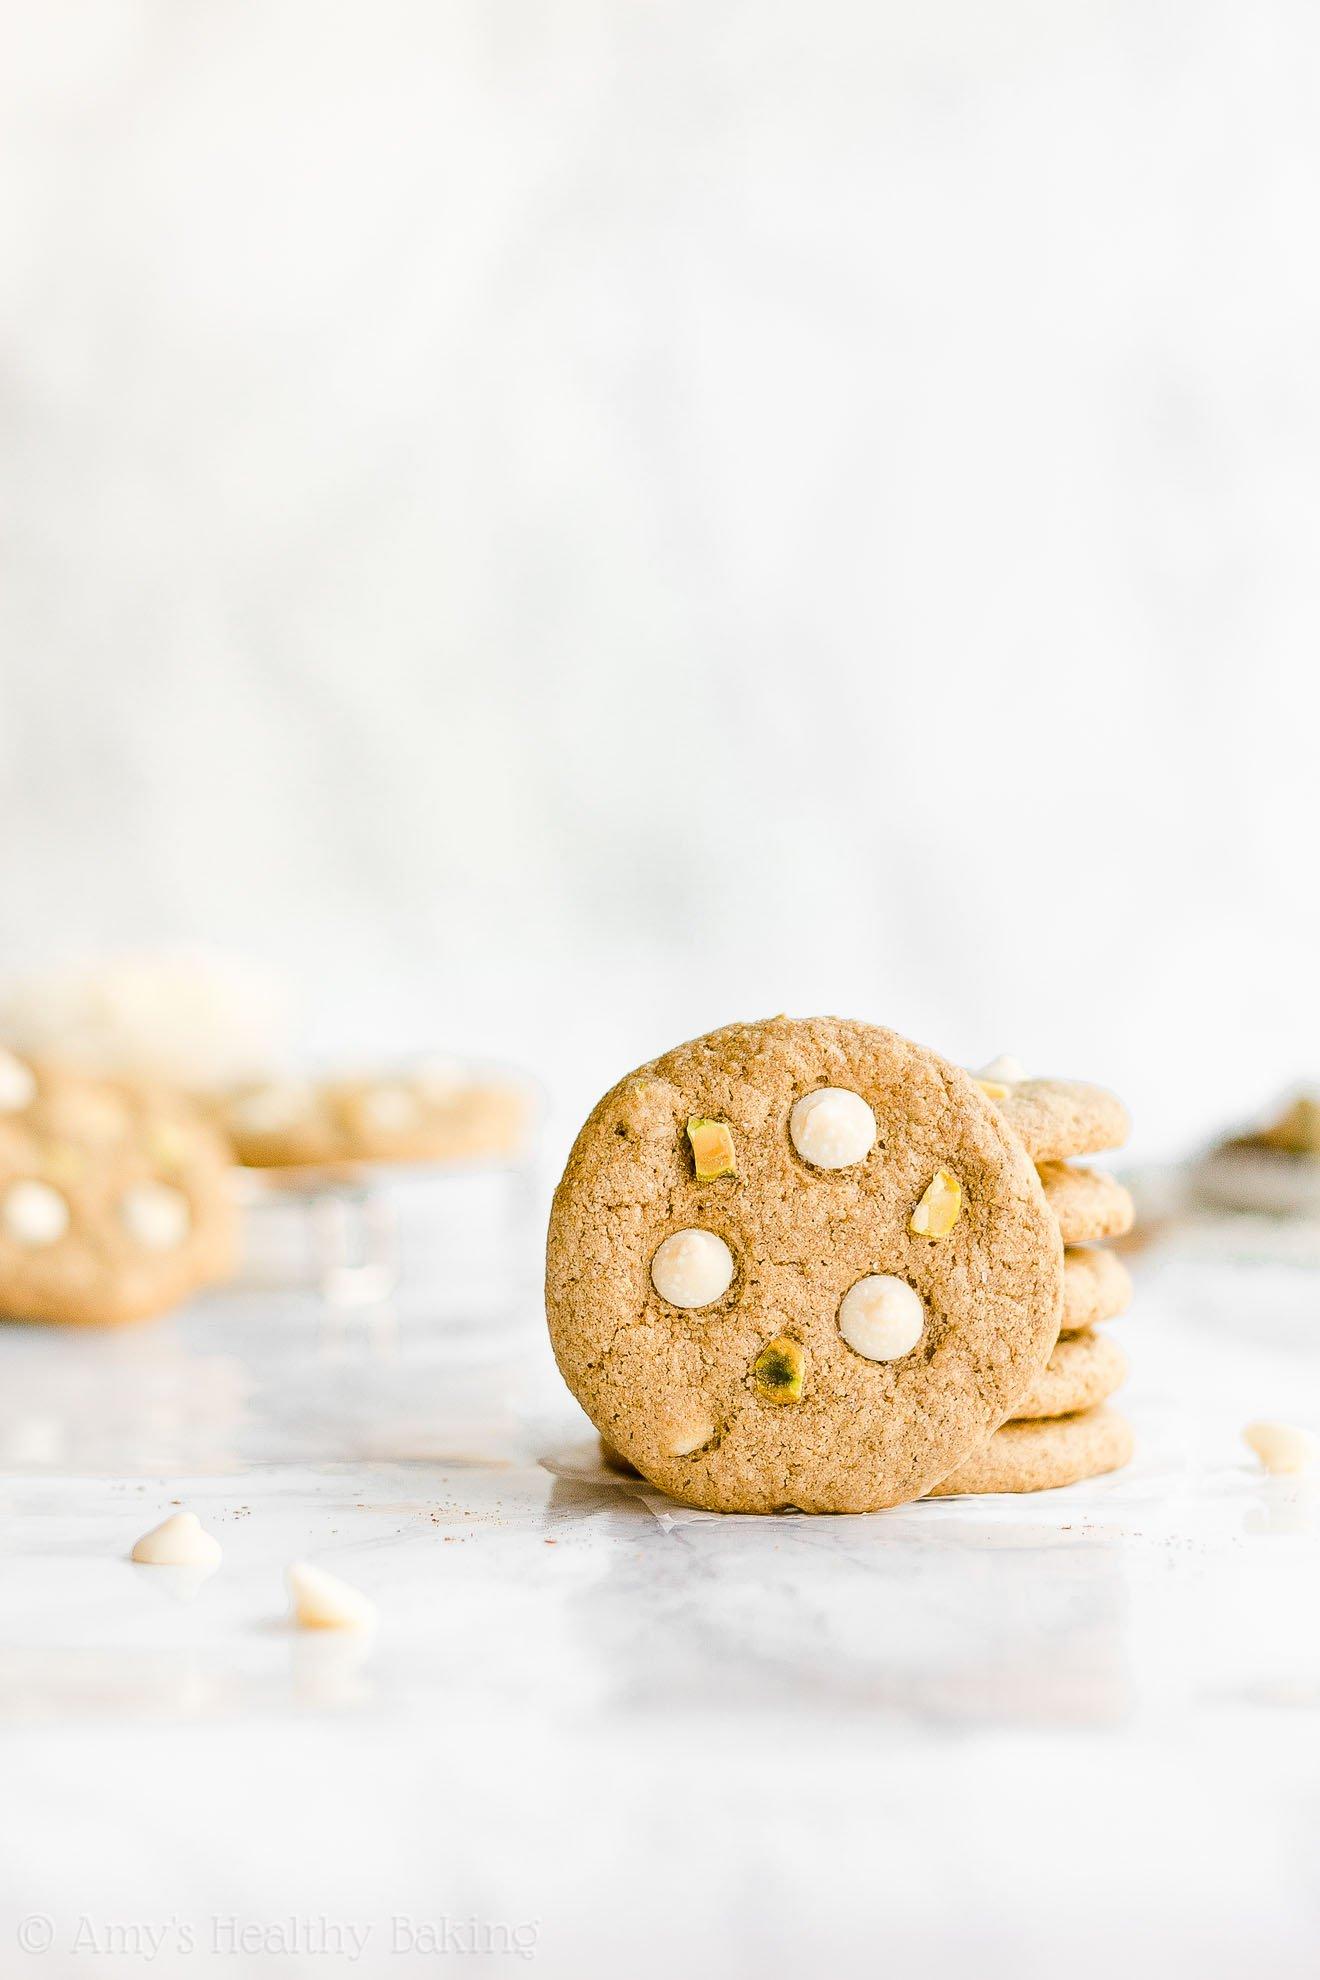 Best Healthy Chewy Spiced White Chocolate Pistachio Cookies with Sea Salt